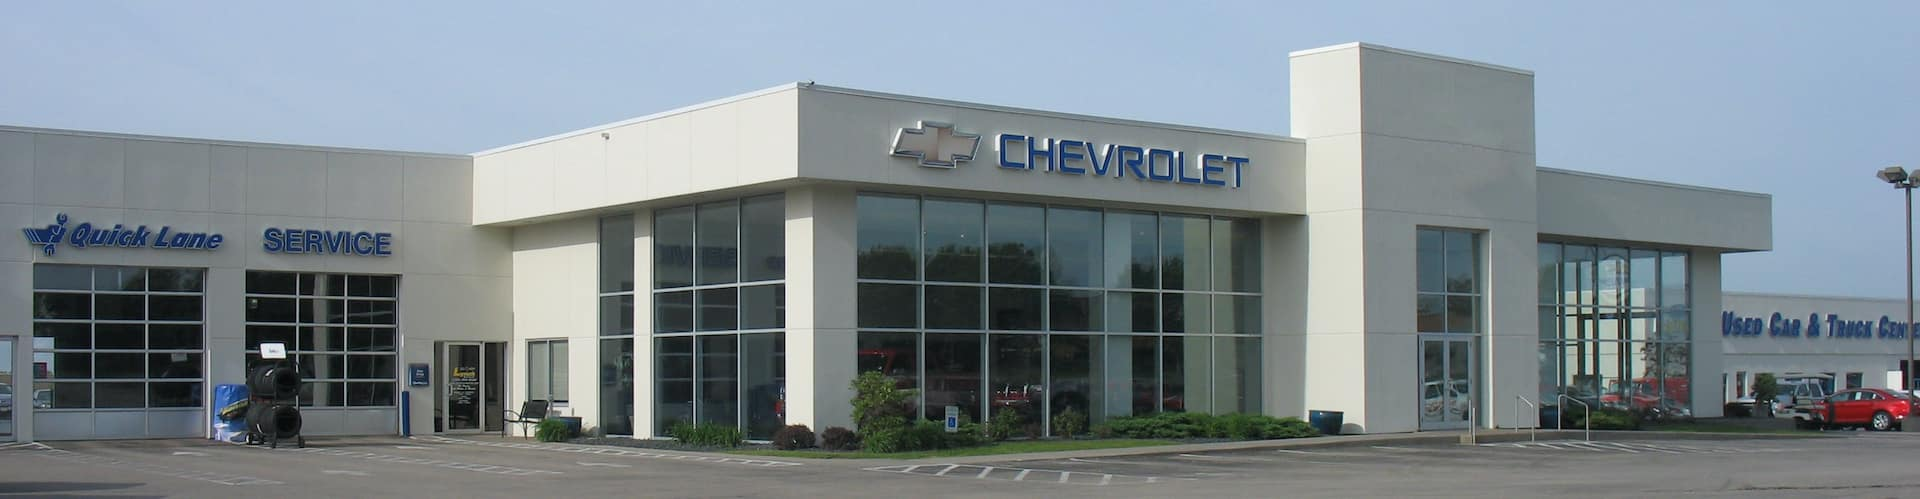 Lynch Chevrolet Inc Chevrolet Dealer In Mount Vernon Ia